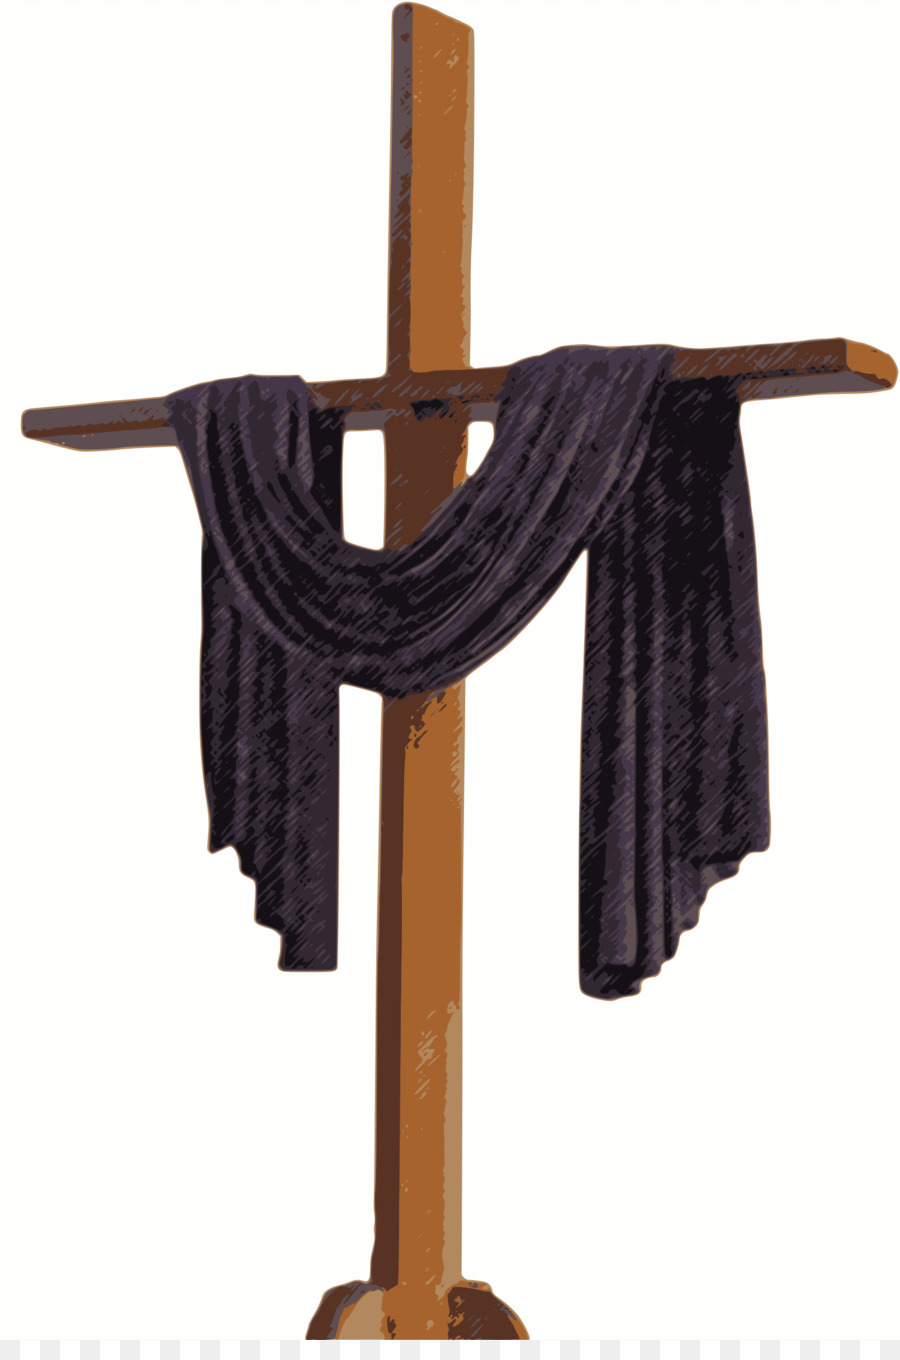 Christian cross Lent Stations of the Cross Clip art - Cross Cloth Cliparts - Lent PNG HD Free